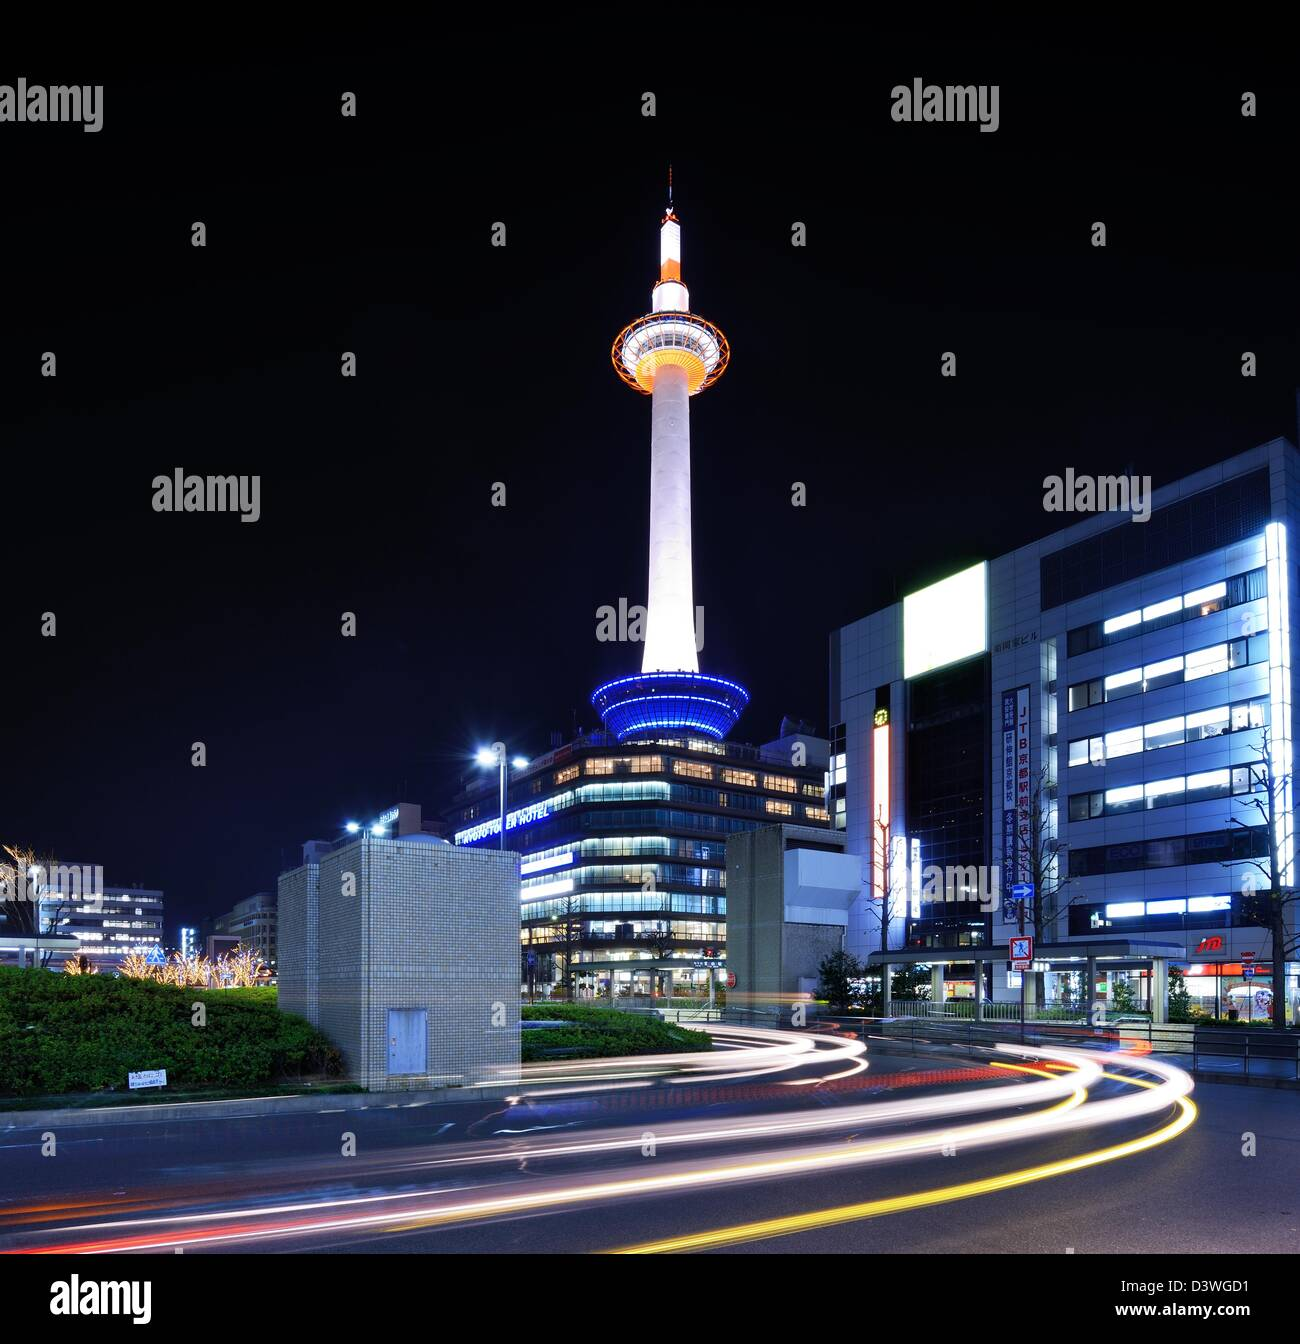 Kyoto Tower in Kyoto, Japan. - Stock Image